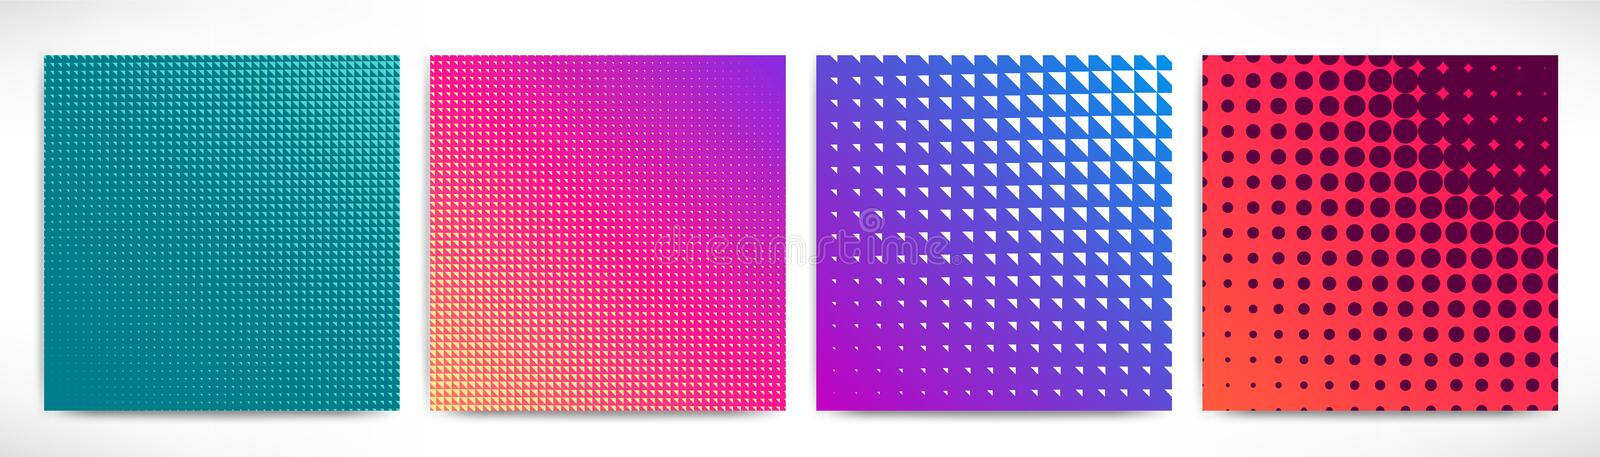 Abstract future backgrounds set vector illustration